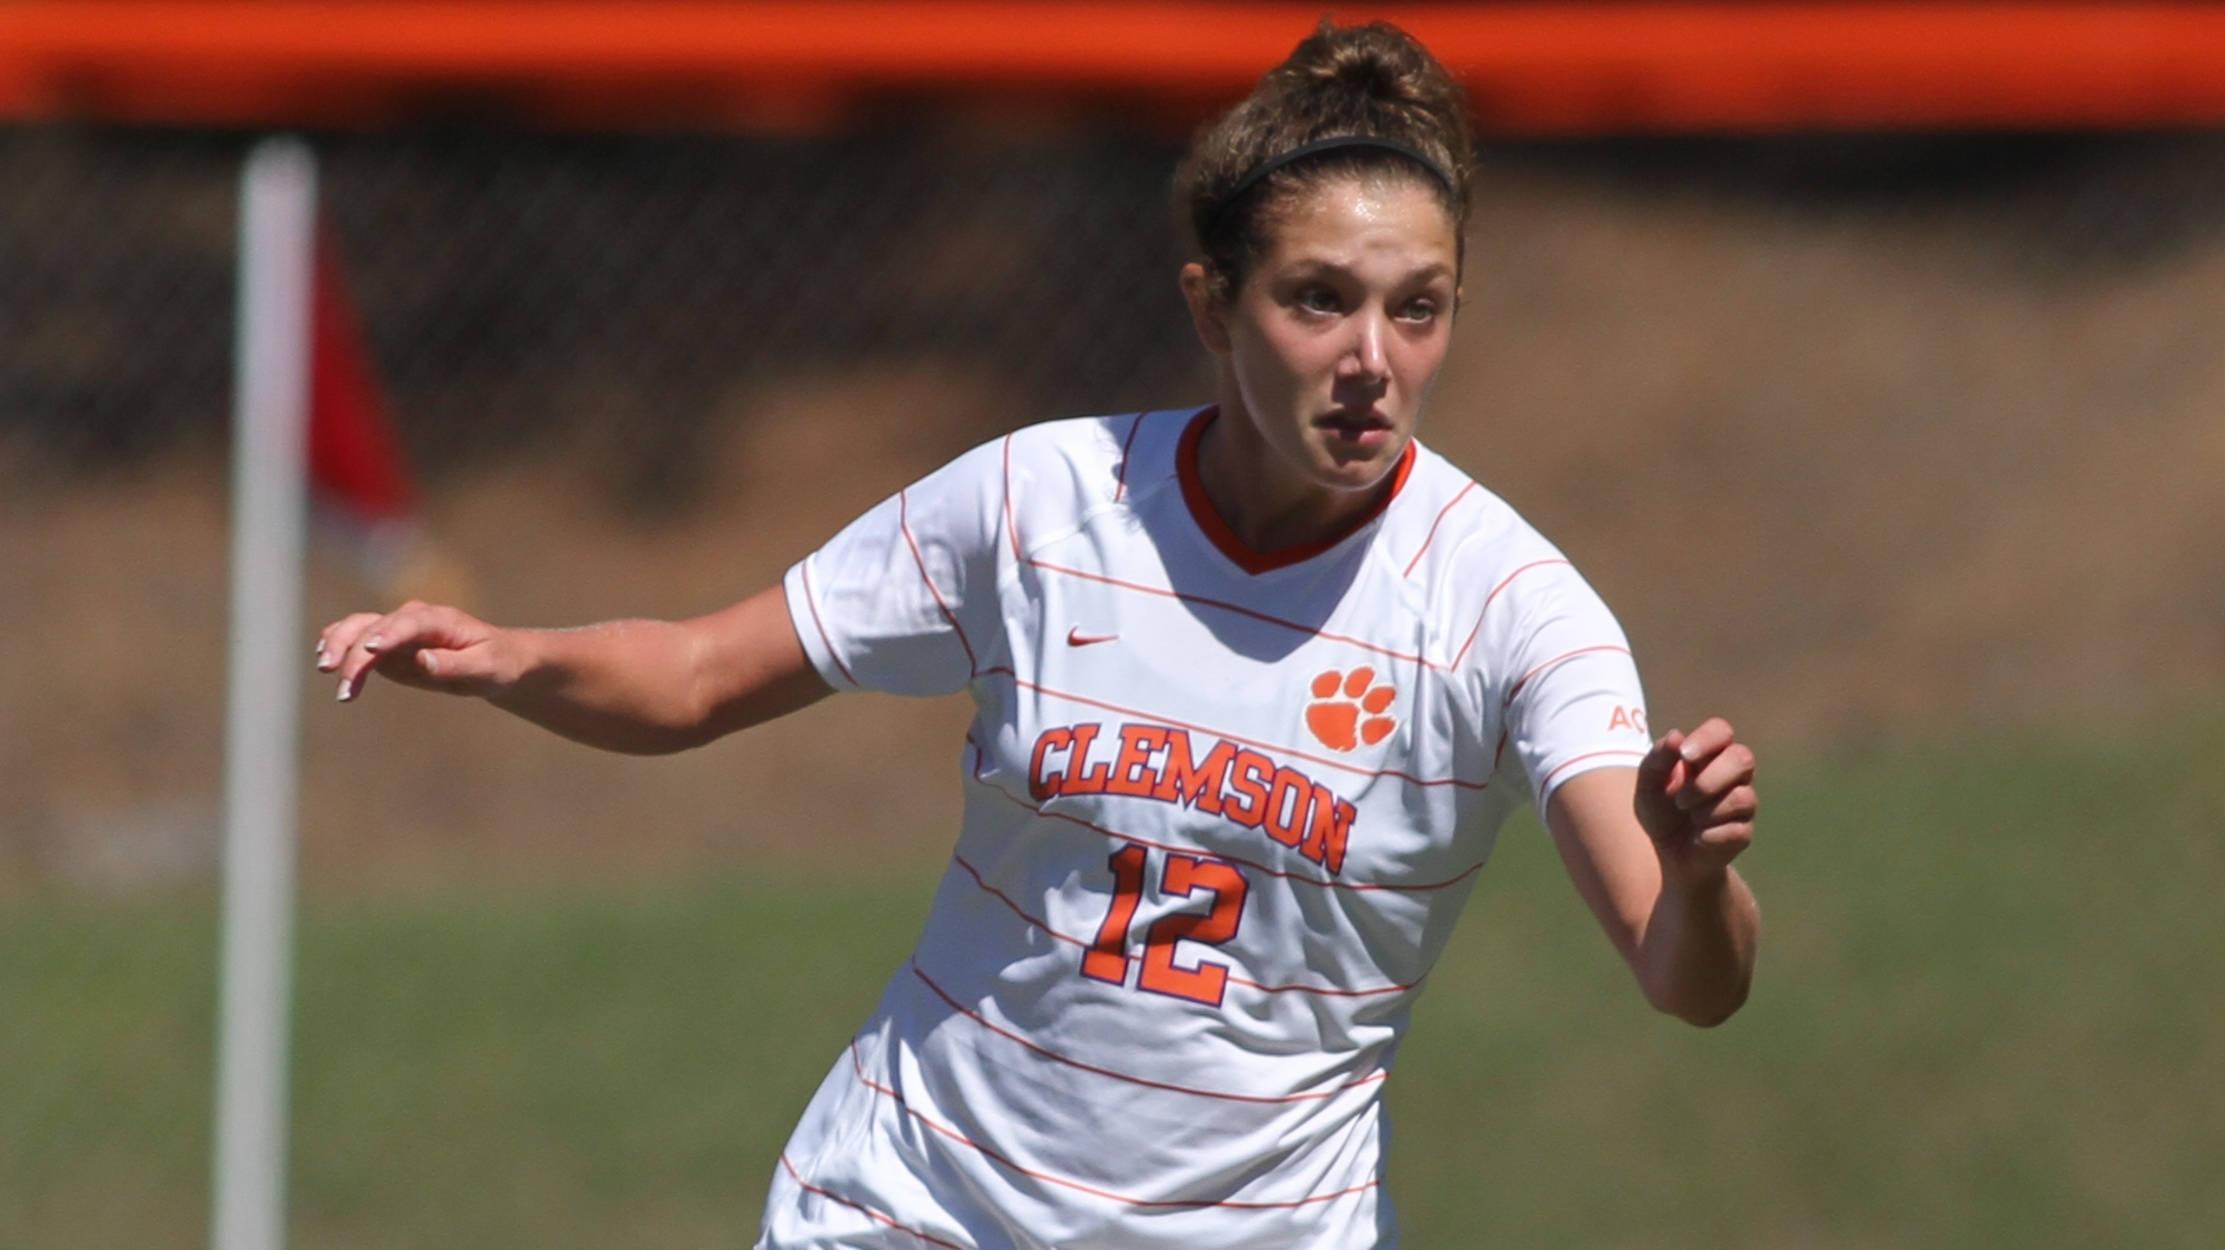 Tigers to Play Host to #22 Virginia Tech Thursday Night